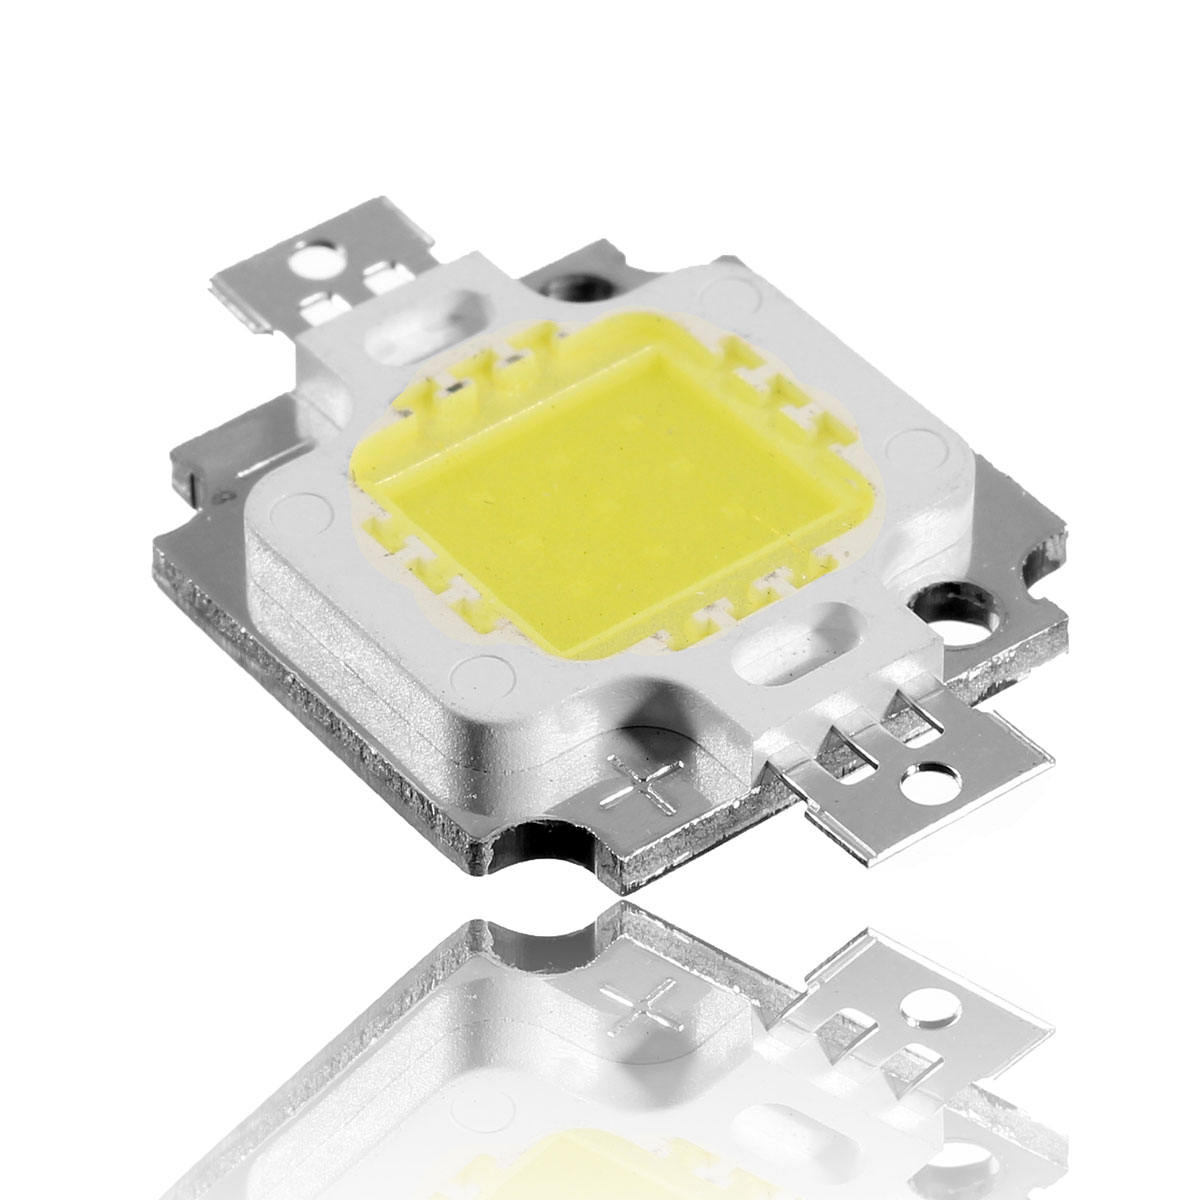 High Power 10W 900LM 5500k-20000K 300MA-900MA 9V-36V DIY square Warm Cold White LED Bulb Light super bright Lamp Beads(China (Mainland))